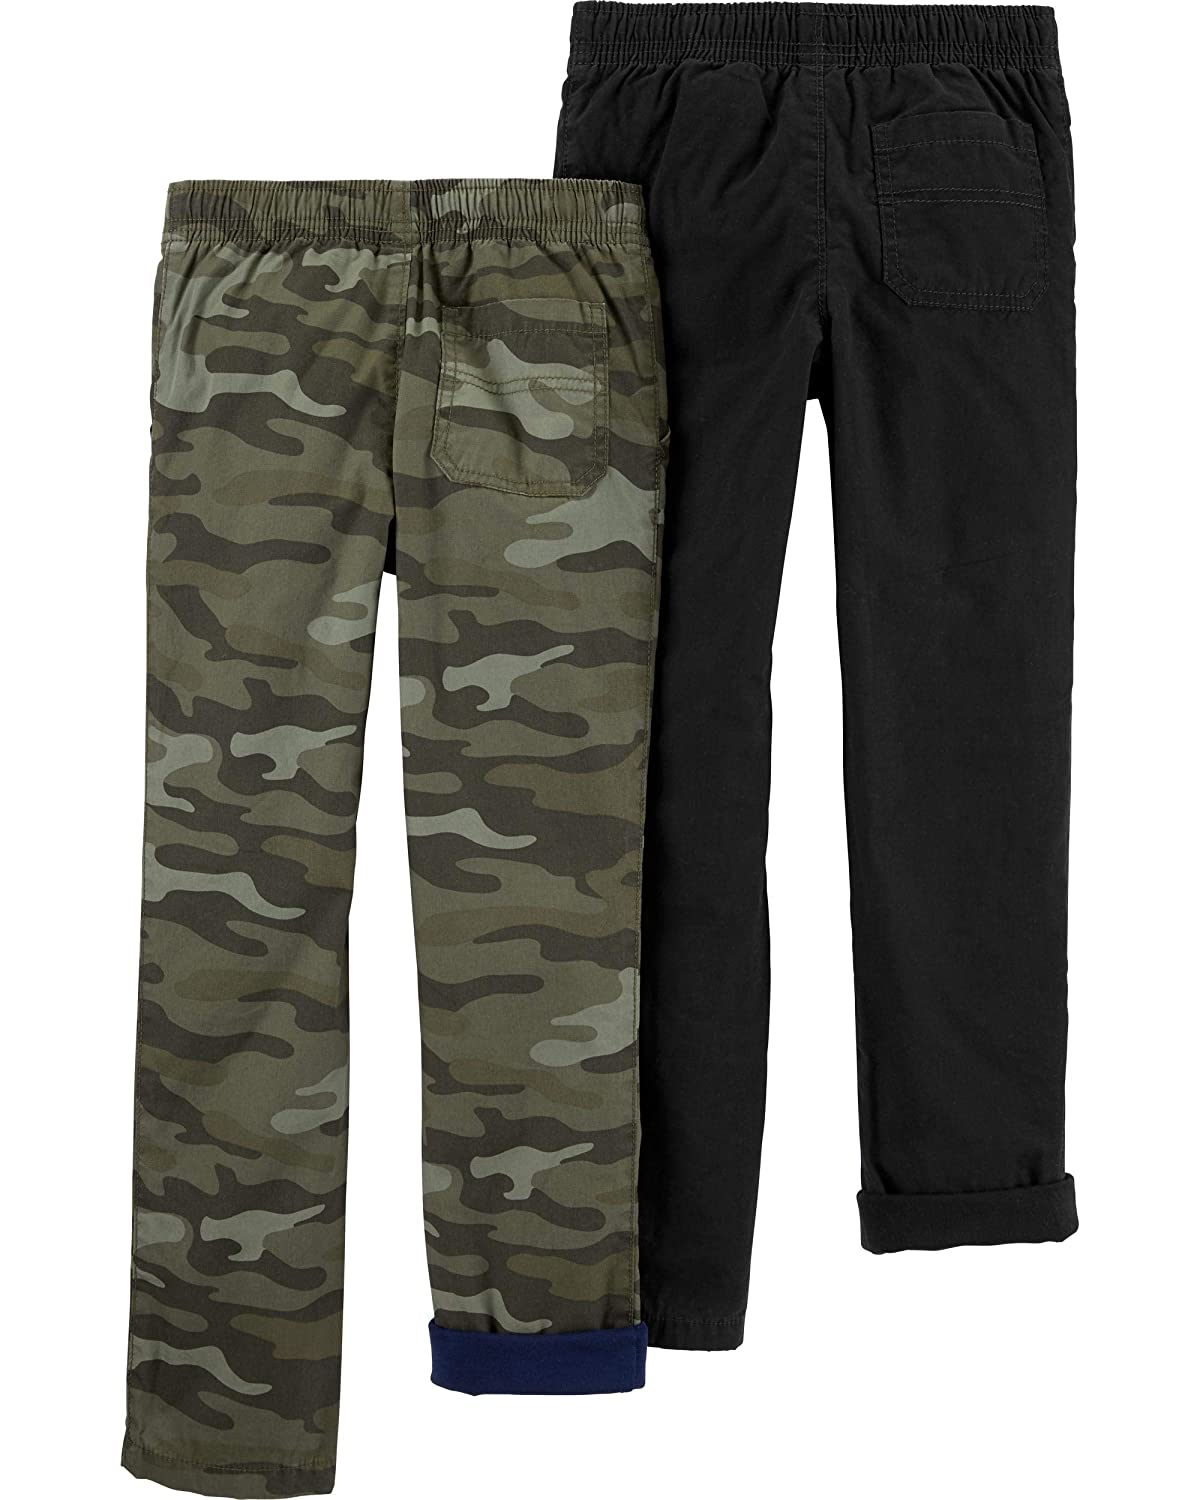 Carters Baby Boys 2-Pack Joggers